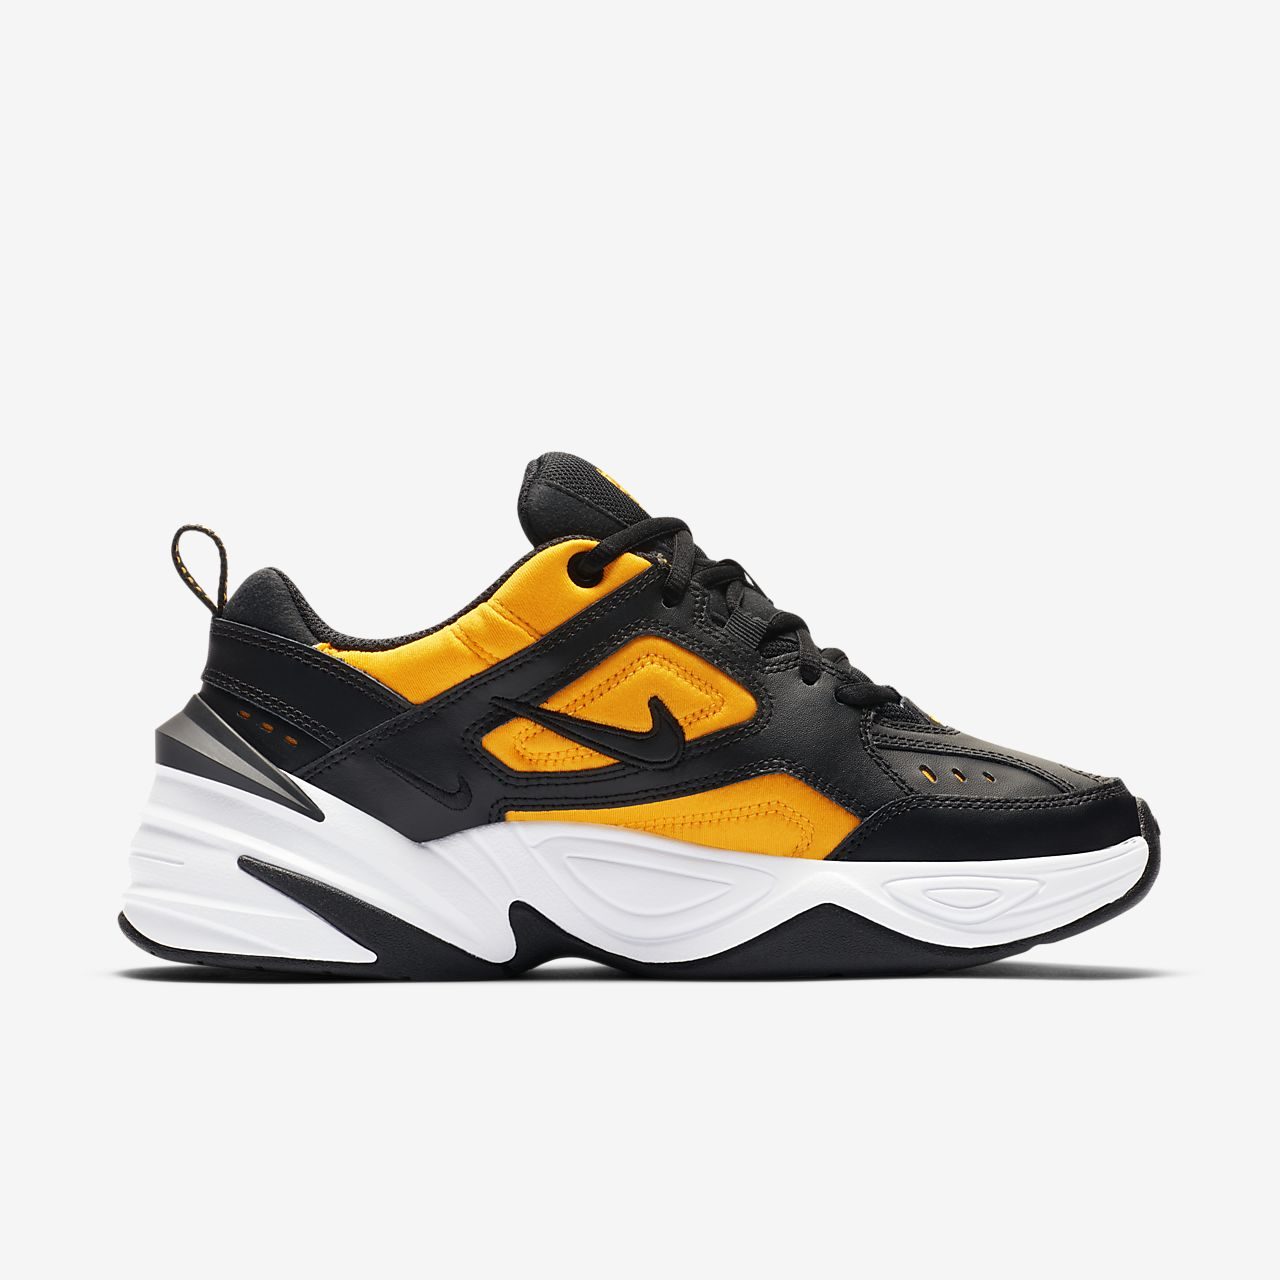 wholesale dealer caaf7 bfcc7 ... Nike M2K Tekno Shoe